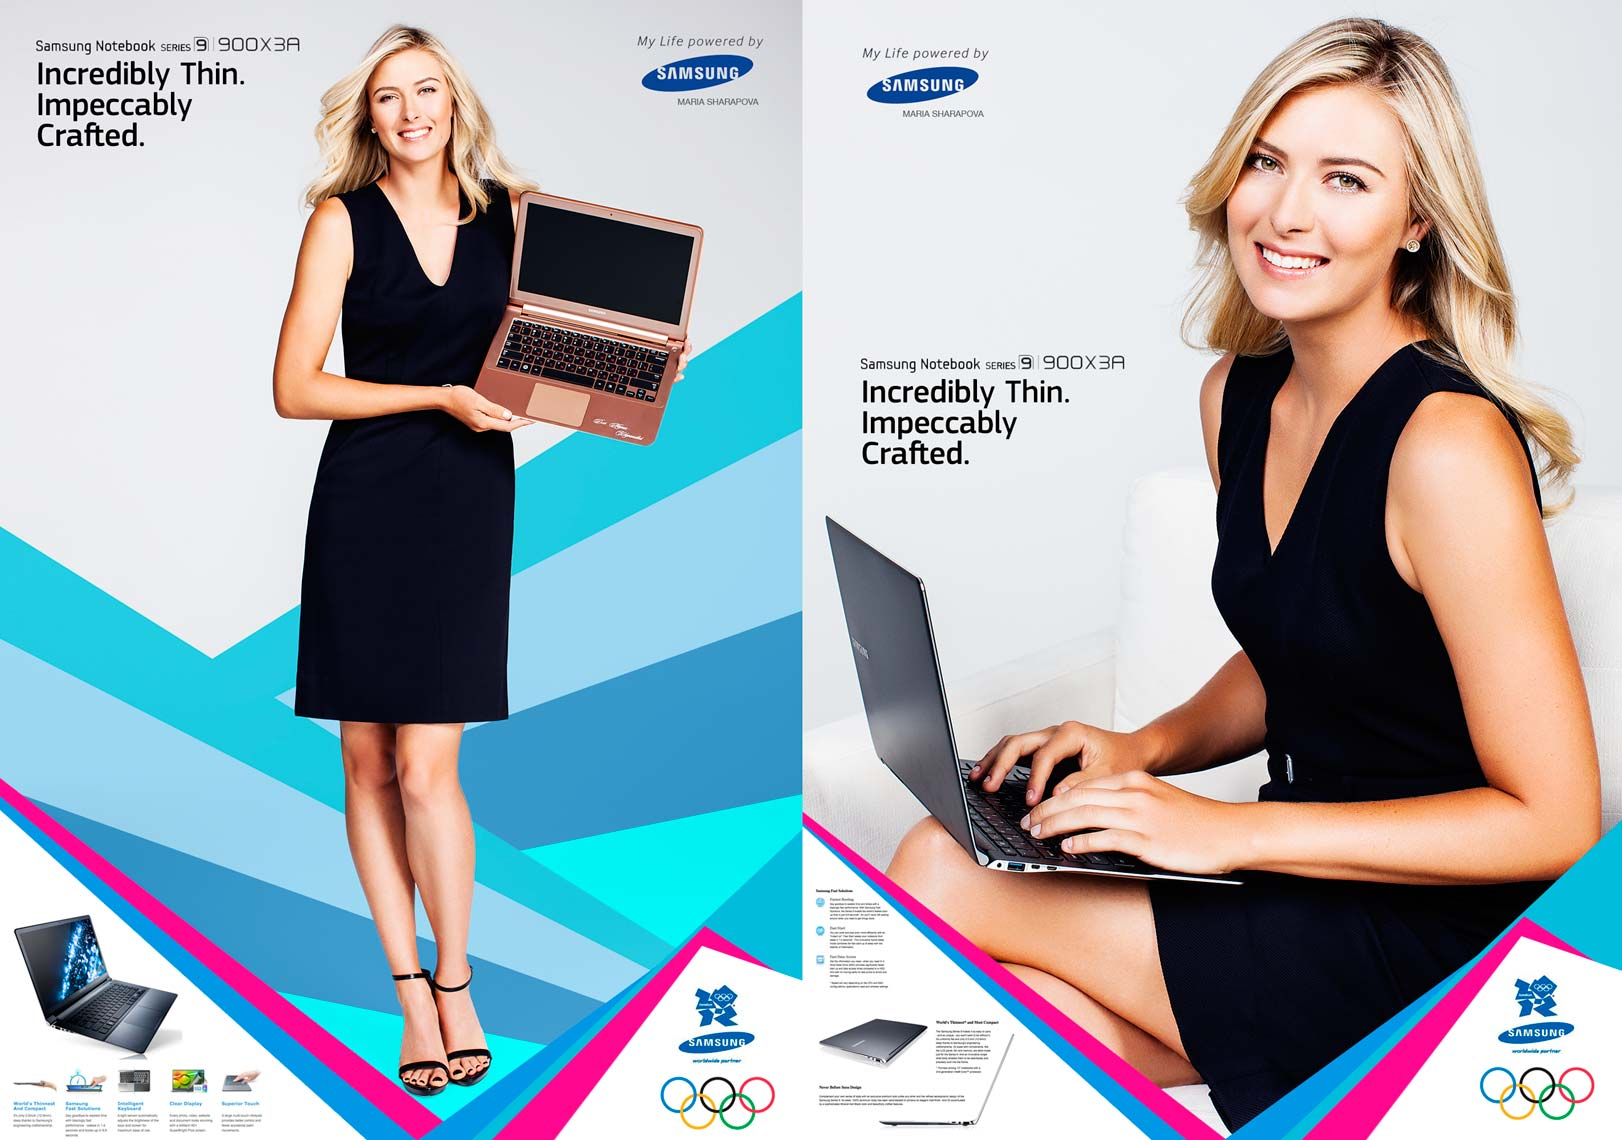 Chris-Hunt-Photography-Advertising-Maria-Sharapova-Samsung-426